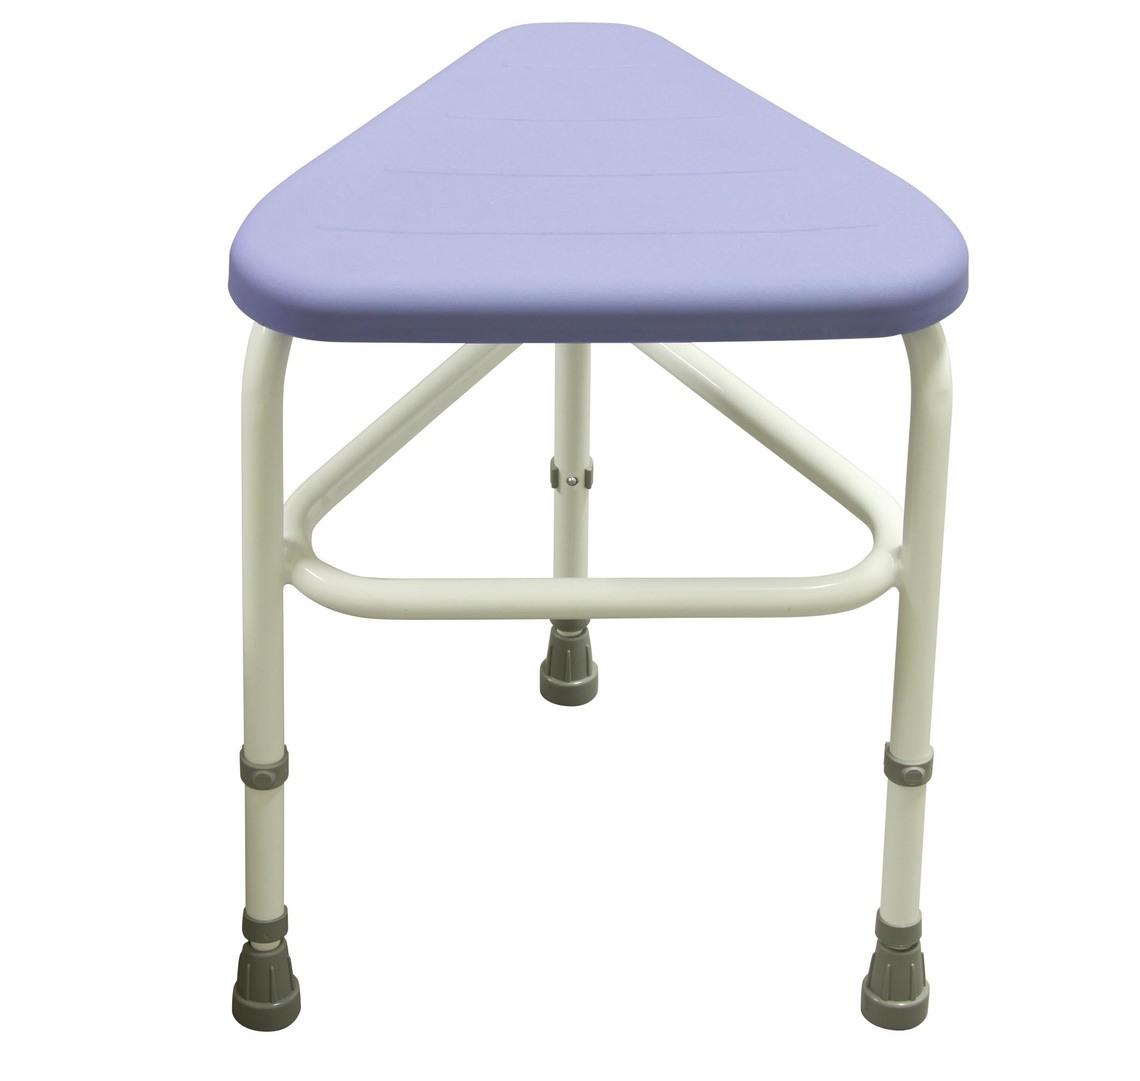 Belmont Bathroom Stool